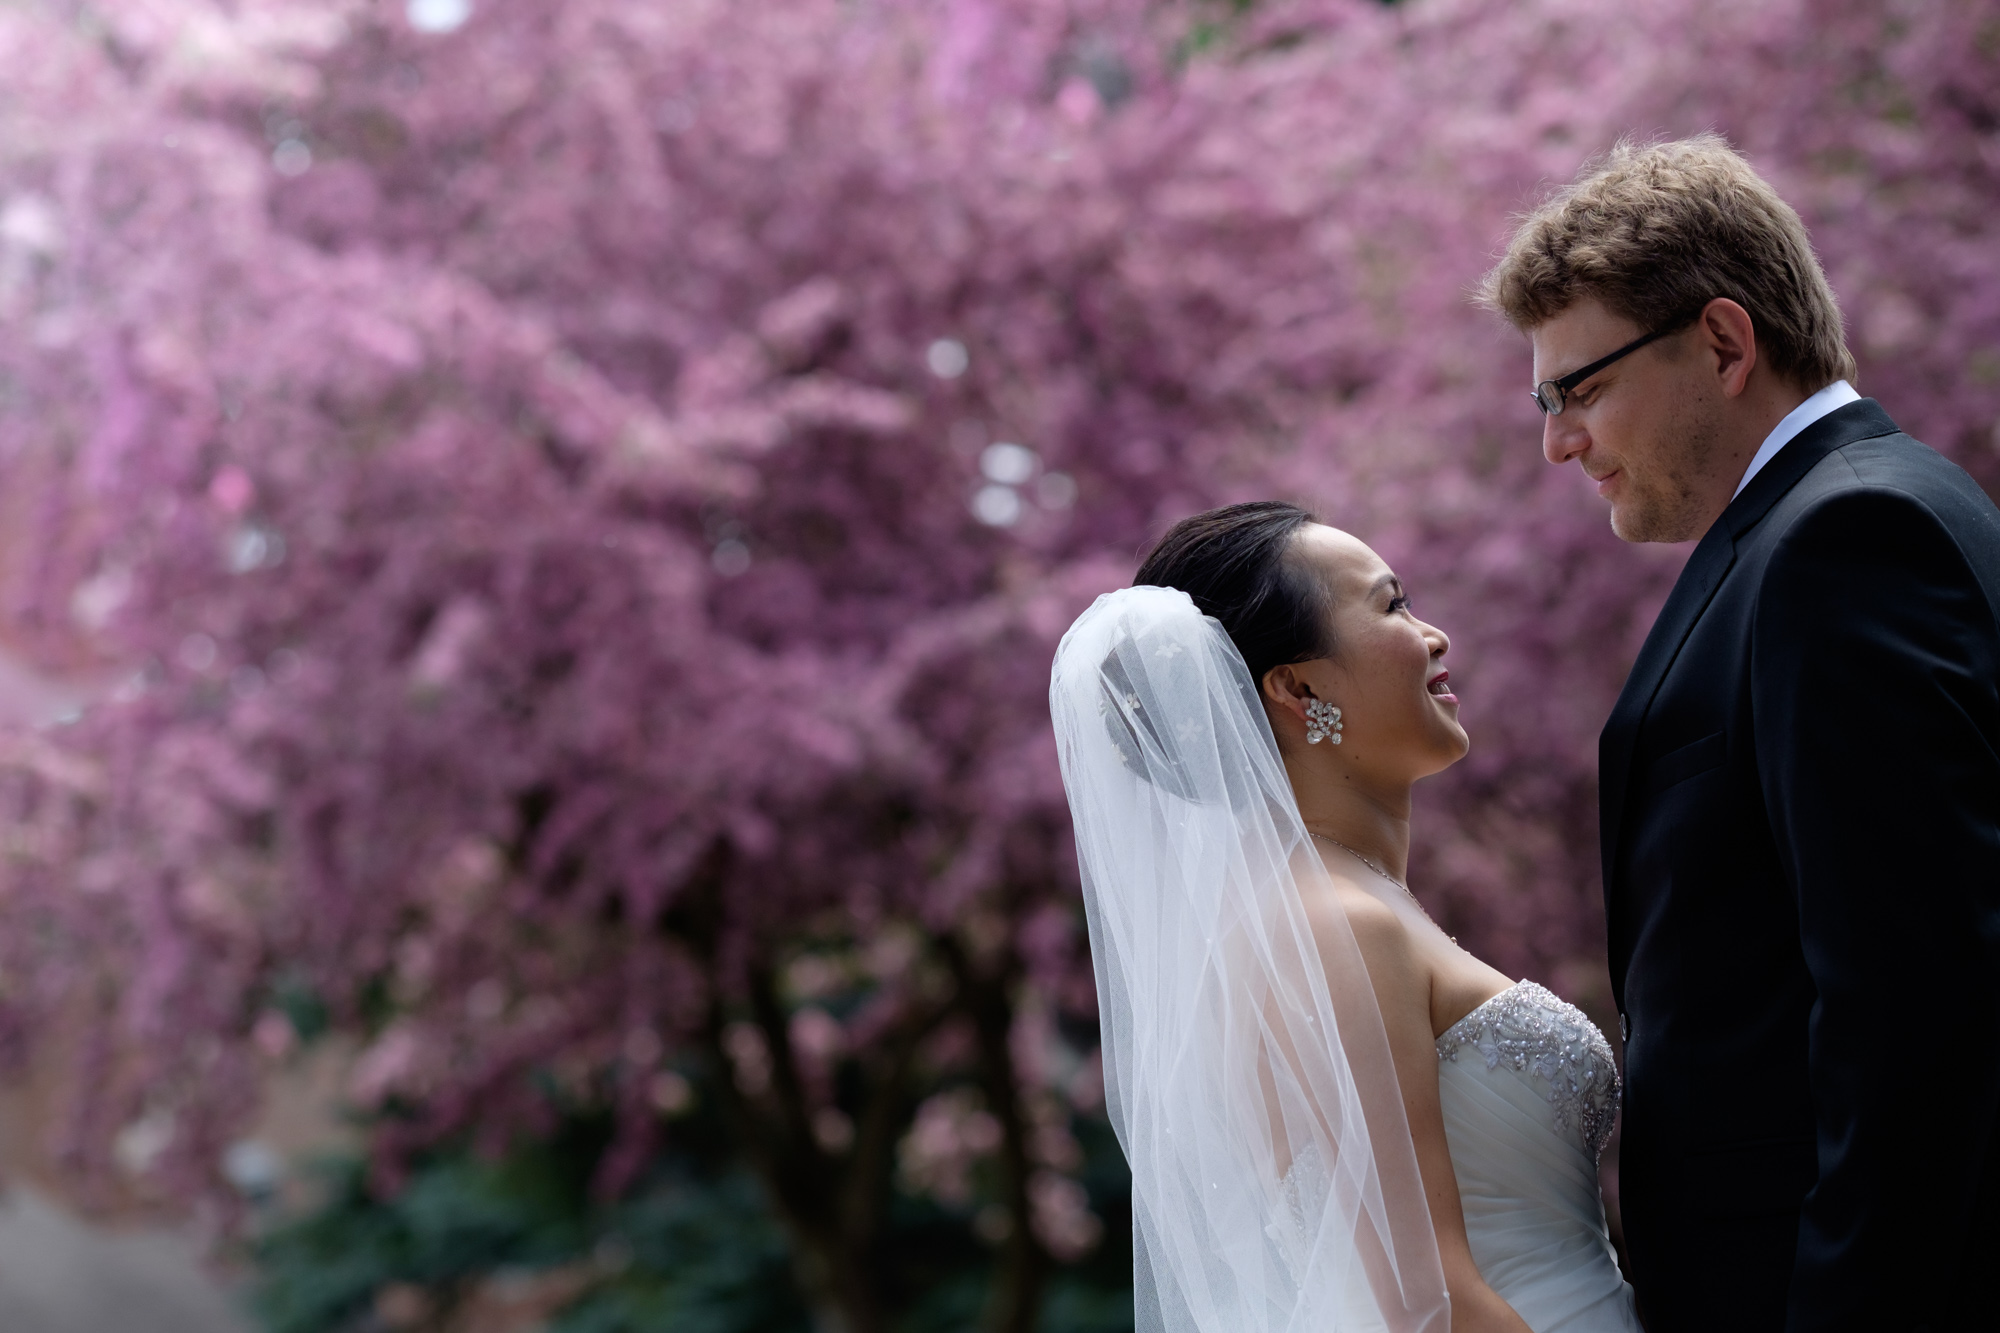 Jing + Rene pose for portraits before their wedding ceremony in Markham.